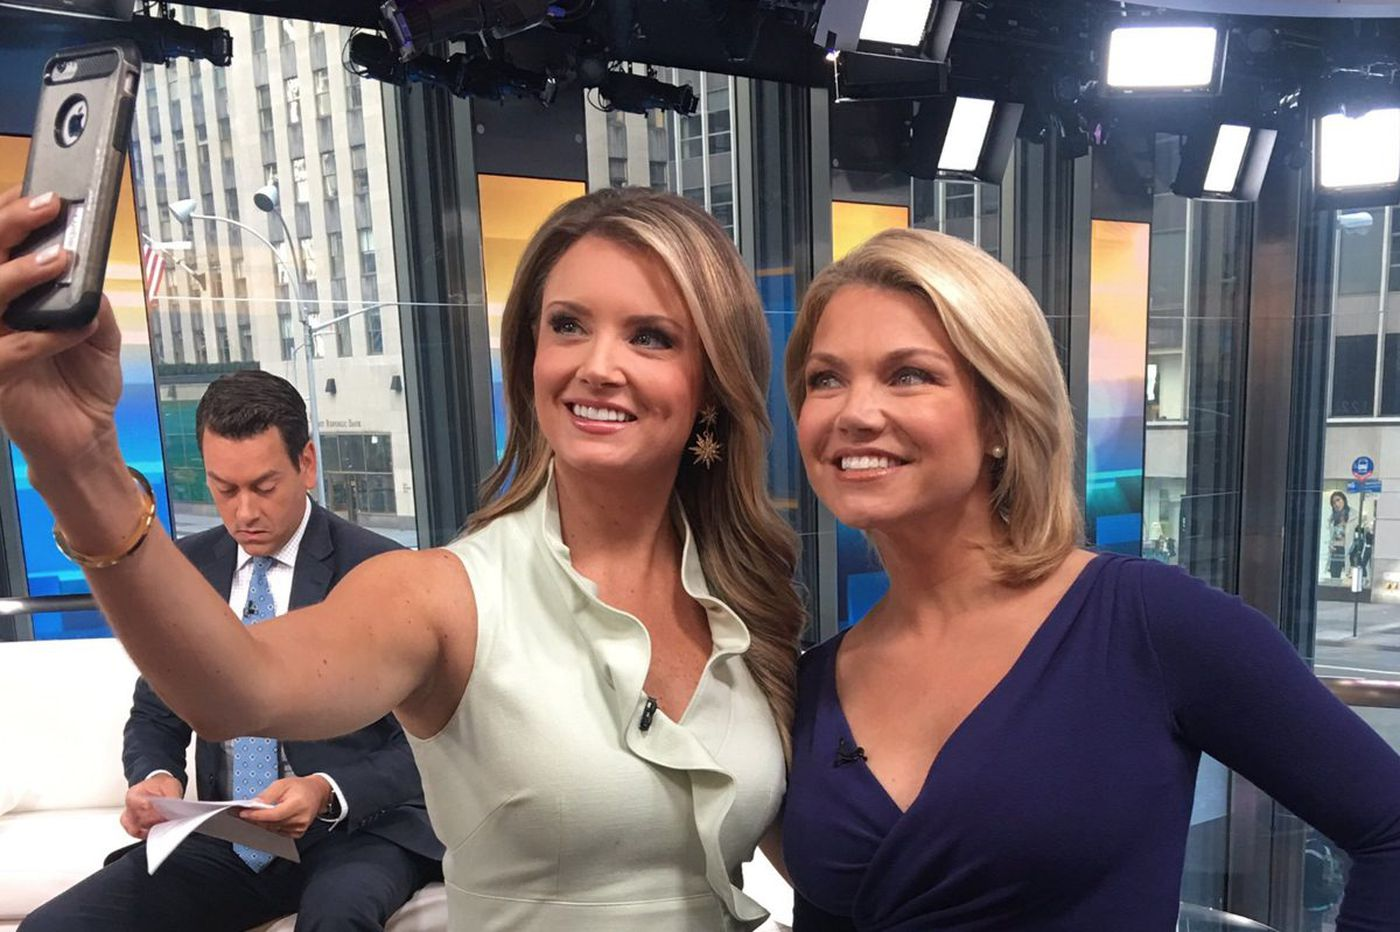 Former CSN Philly host Jillian Mele gets a promotion at Fox News